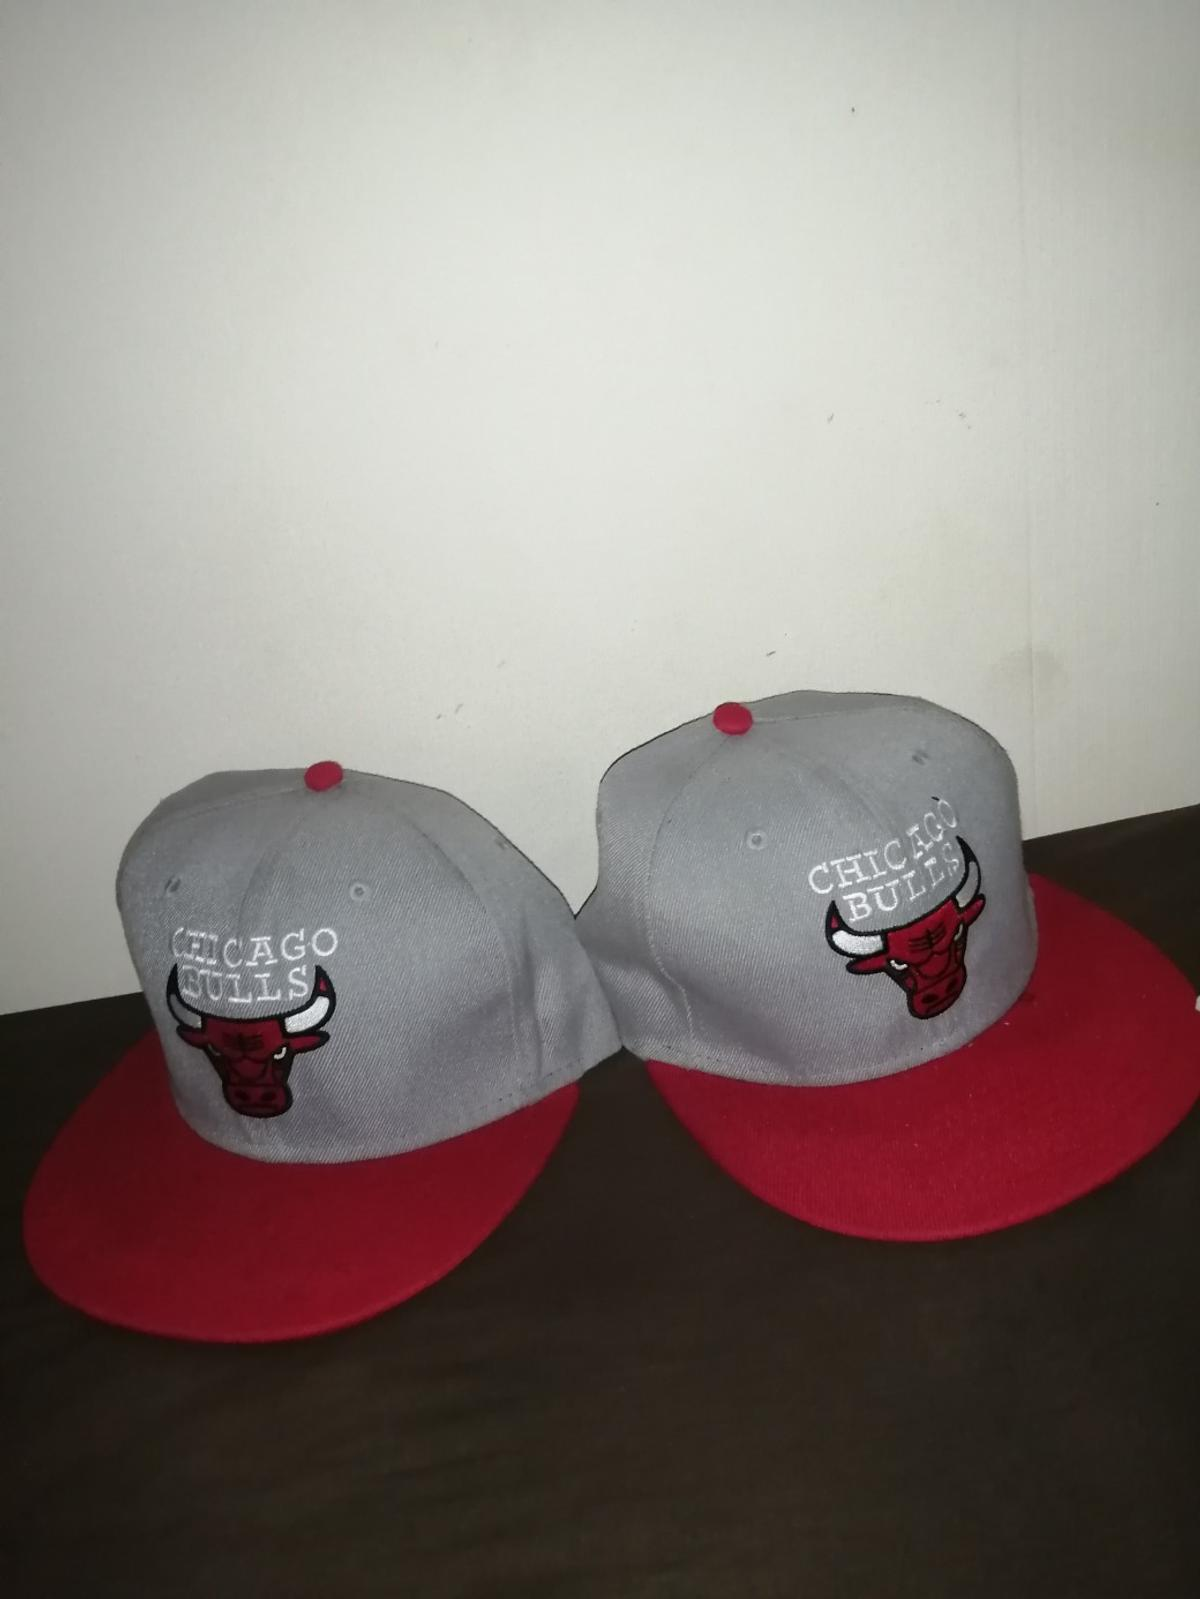 2x Chicago bulls - £5 each 1 Cleveland Indians - £10 1 Cocaine & Caviar - £10 1 Red Wings - £5